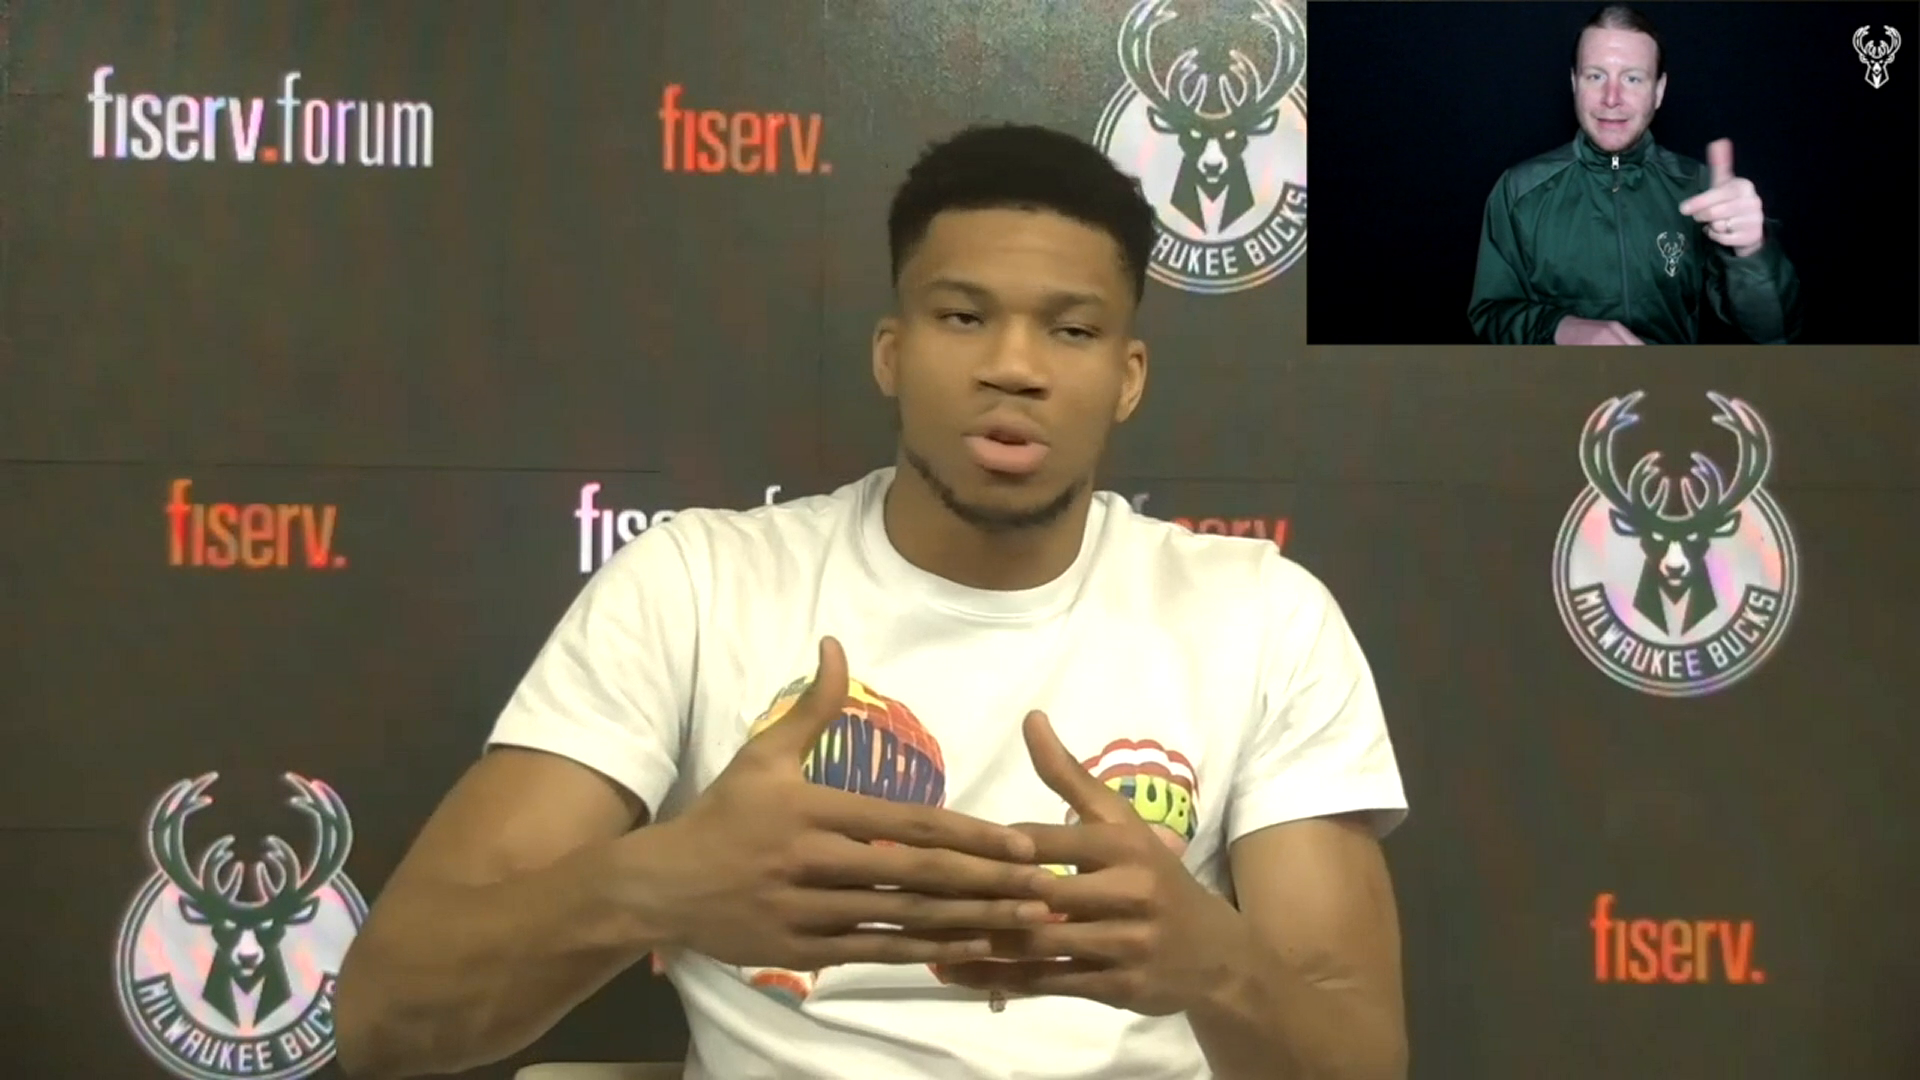 Giannis Antetokounmpo ASL Press Conference | 3.2.21